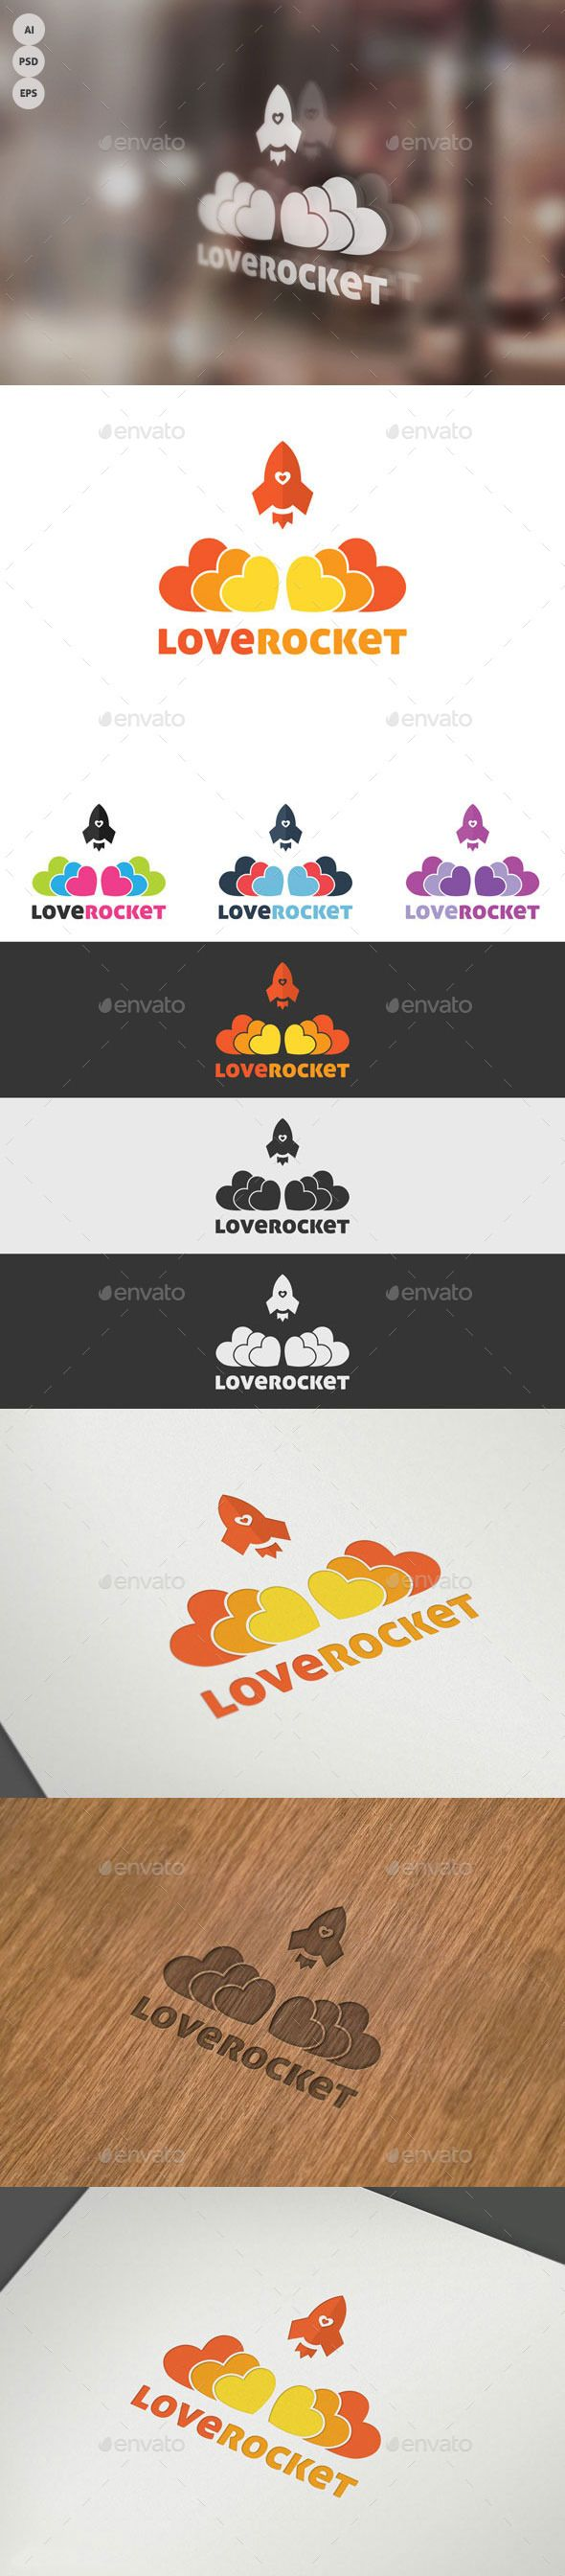 Love Rocket Logo — Photoshop PSD #love #colors • Available here → https://graphicriver.net/item/love-rocket-logo/9958115?ref=pxcr